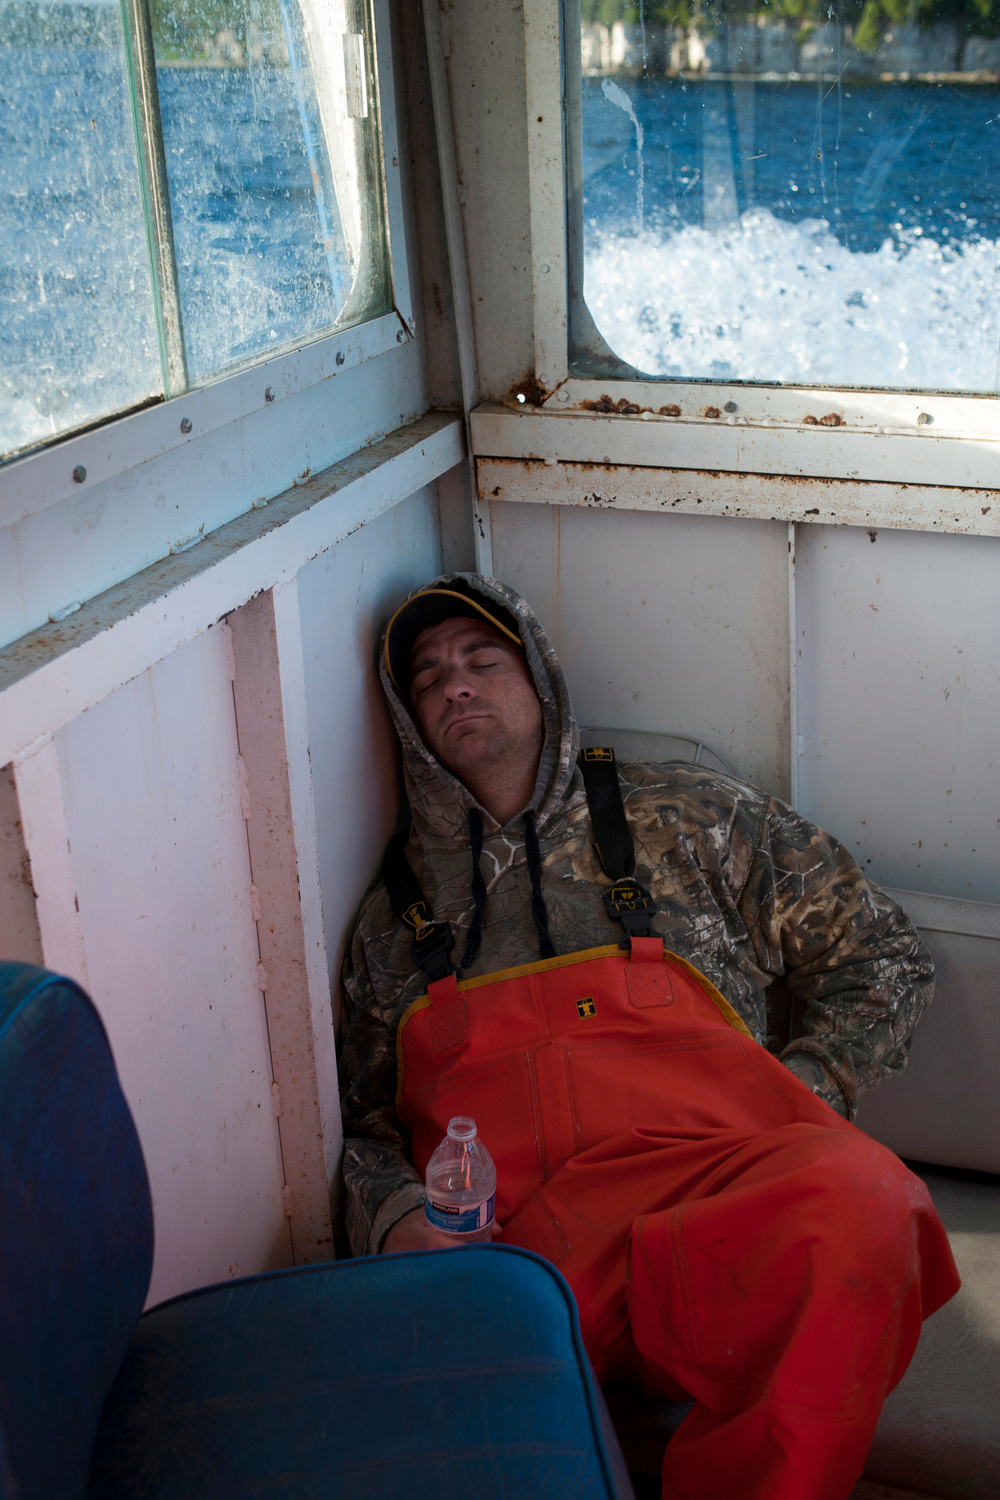 Eric Weborg sleeps on the Robyn B. as the crew heads out to pull nets. The crews fish 3-4 times a week, starting early in the morning, depending on orders or the number of fish caught on previous days.